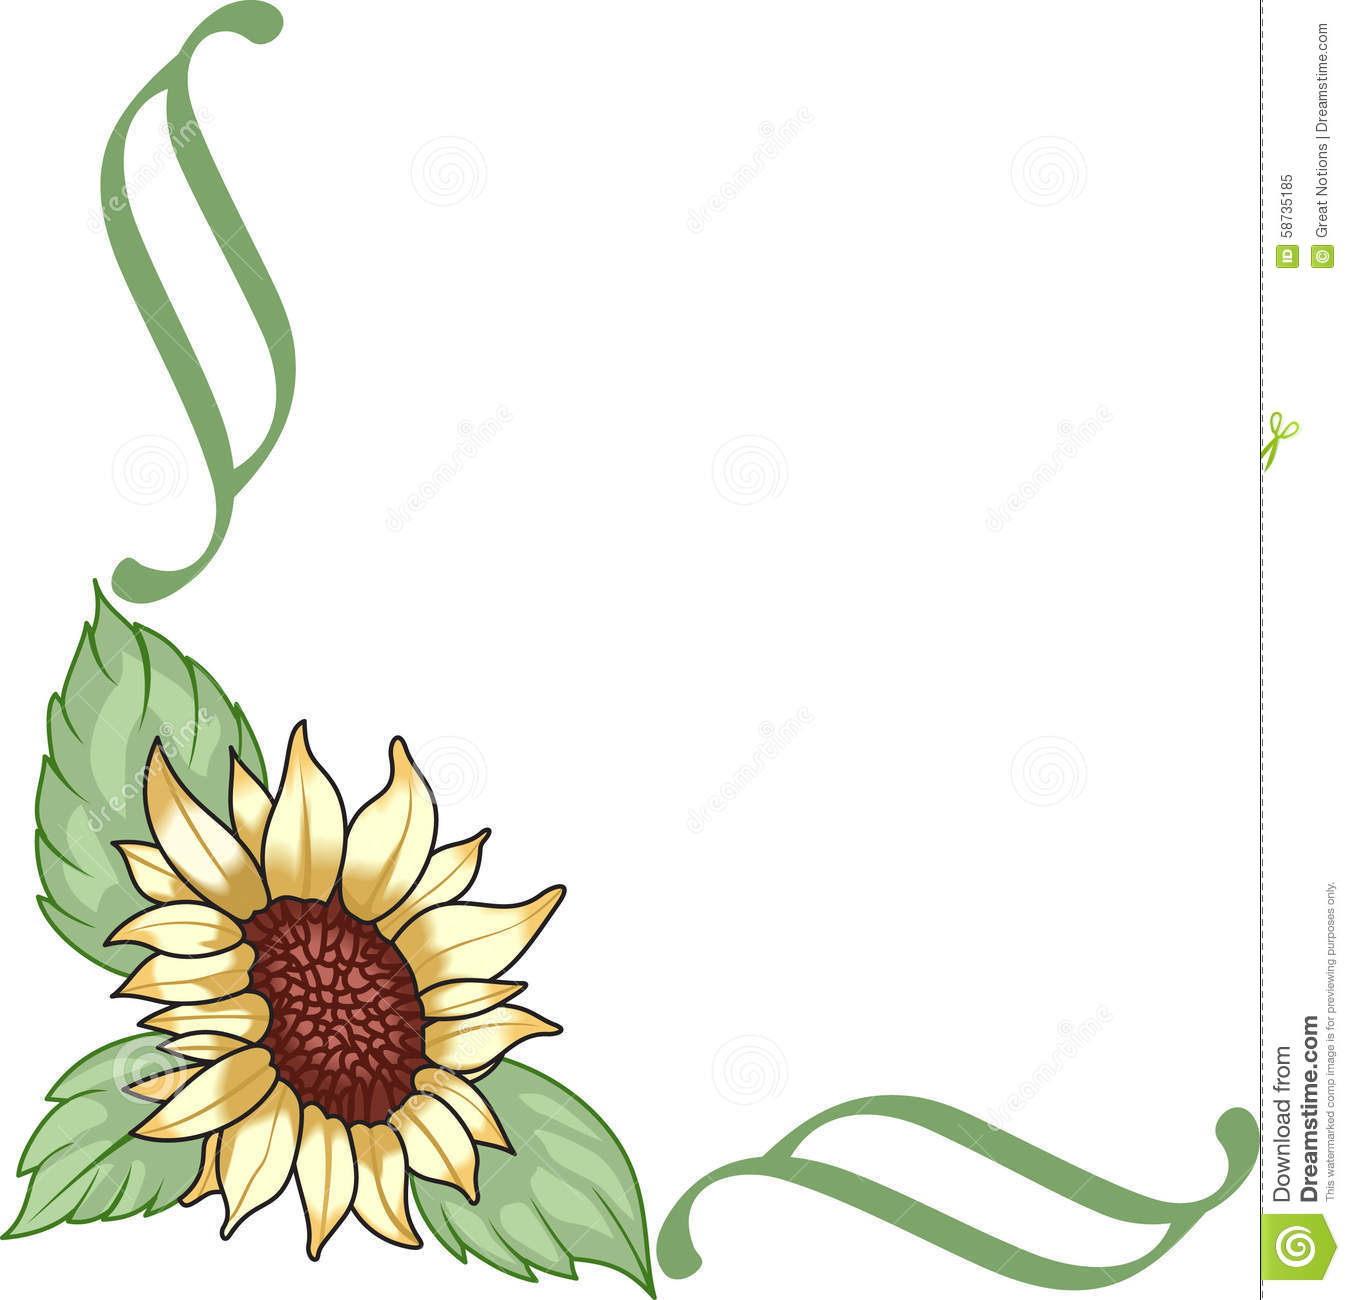 Royalty Free Stock Photo: SUNFLOWER CORNER BORDER. Image ...